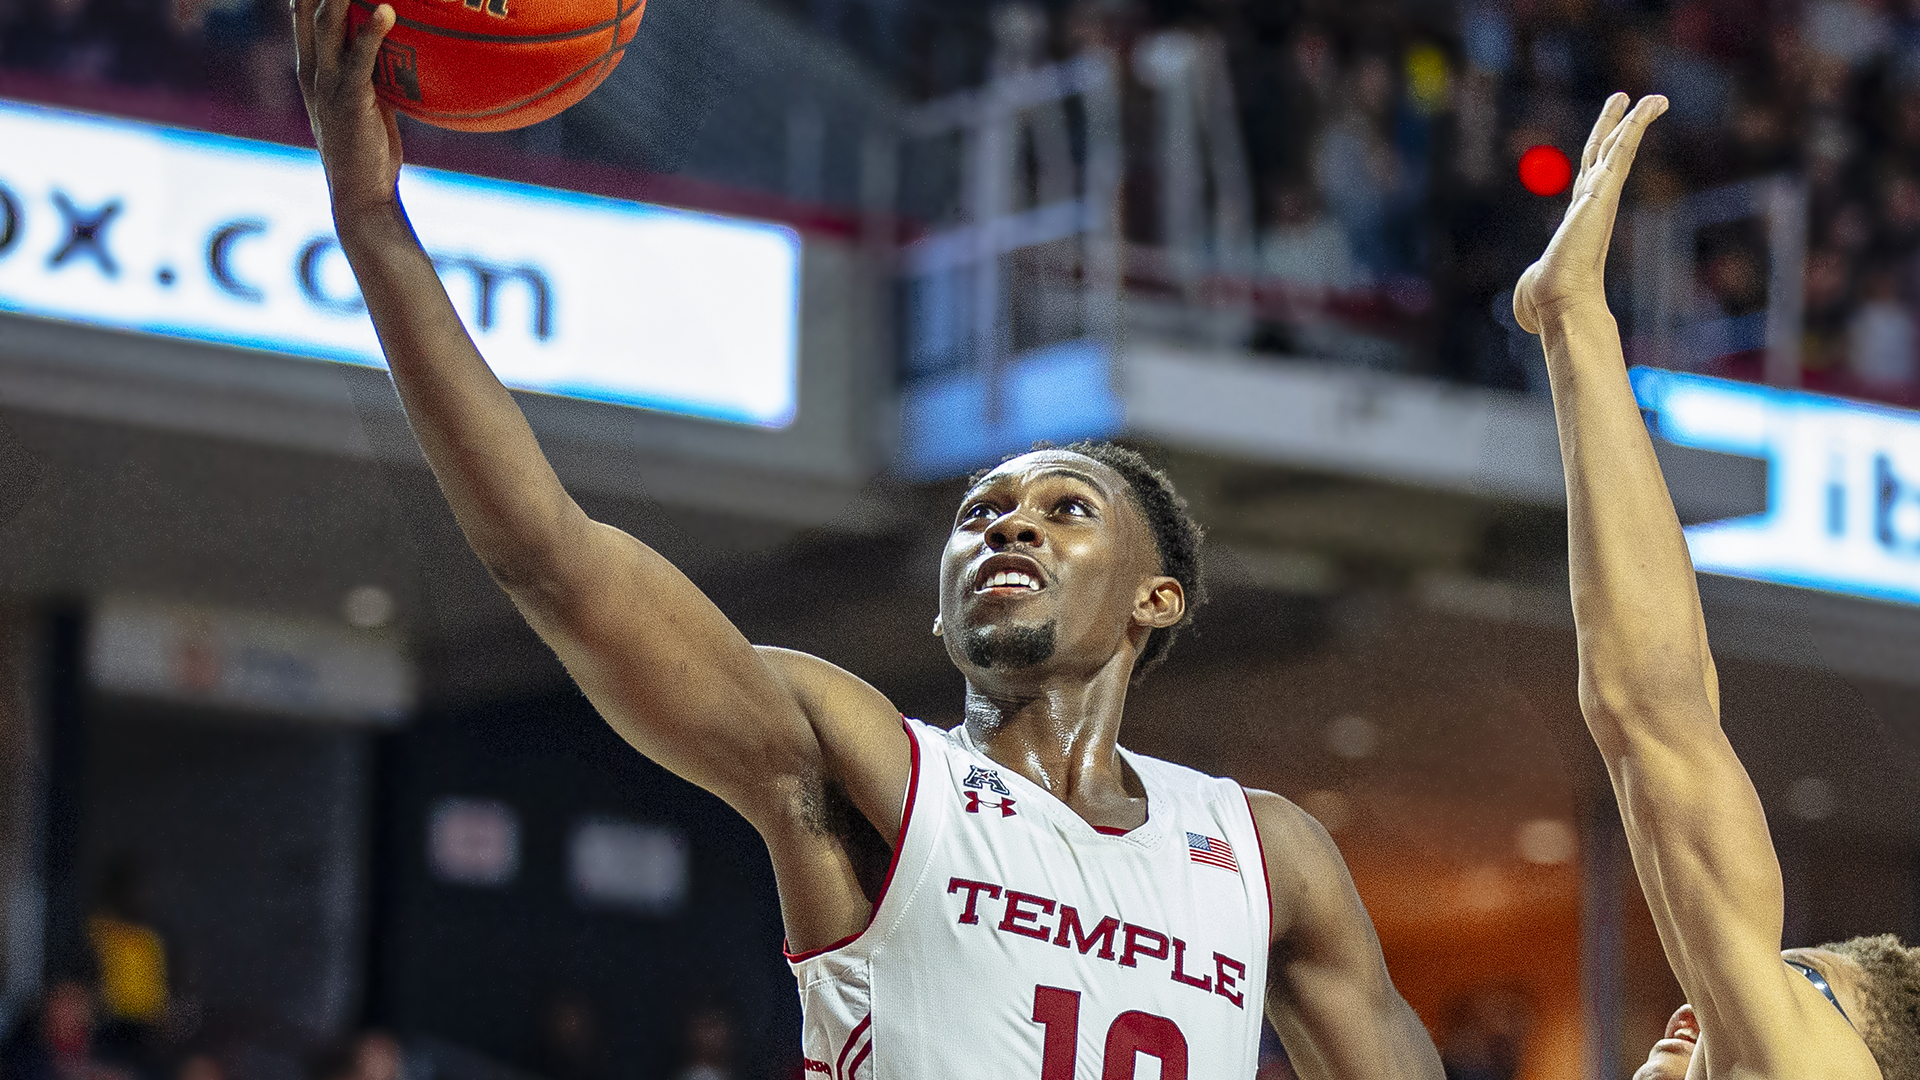 c36c9e37e61 Men's Basketball Heads to UCF on Wednesday for AAC Opener - Temple ...